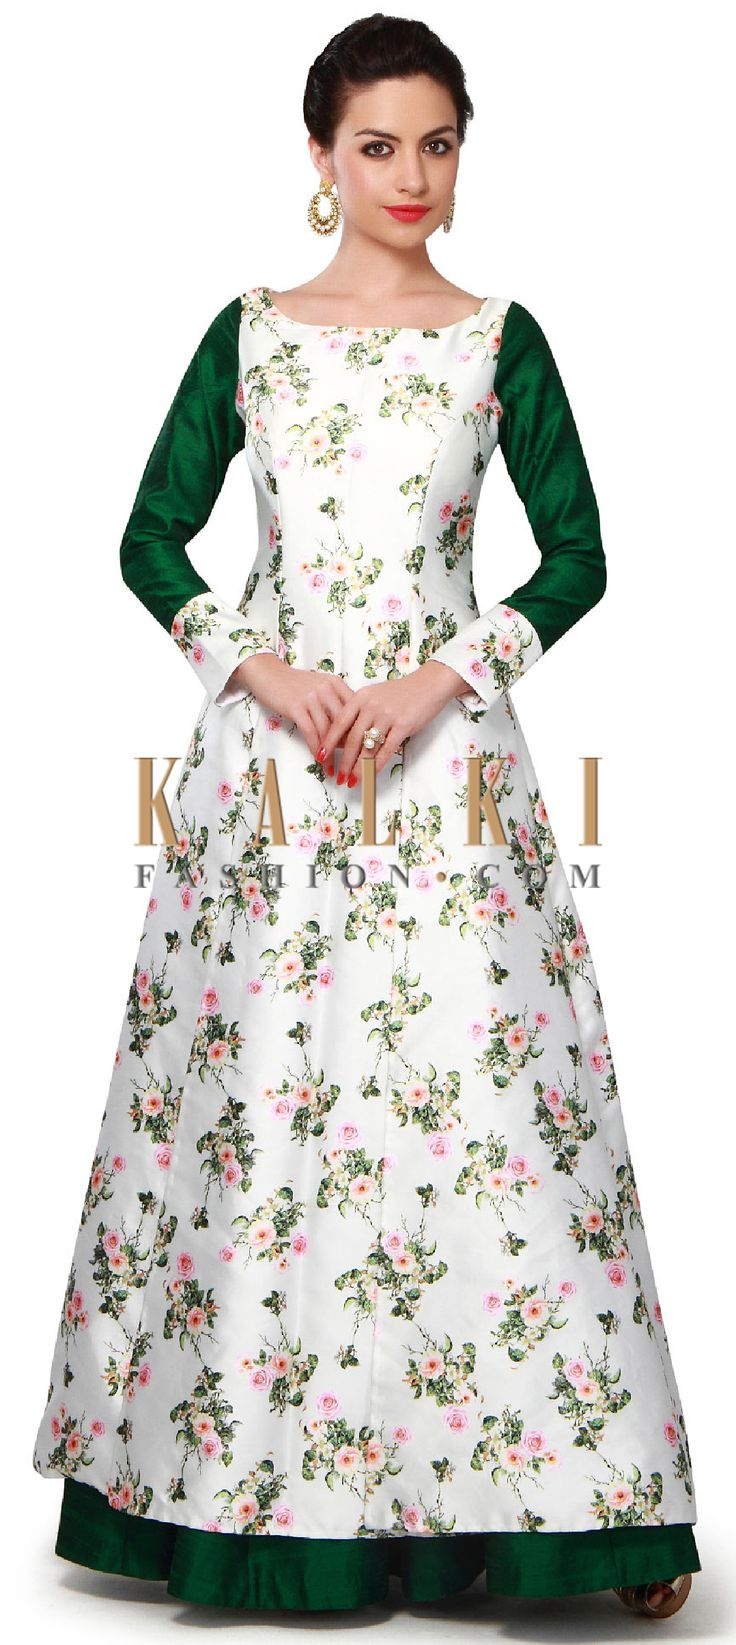 Buy Online from the link below. We ship worldwide (Free Shipping over US$100). Product SKU - 318363. Product Price - $319.00. Product link - http://www.kalkifashion.com/white-and-green-silk-dress-adorn-in-floral-print-only-on-kalki.html